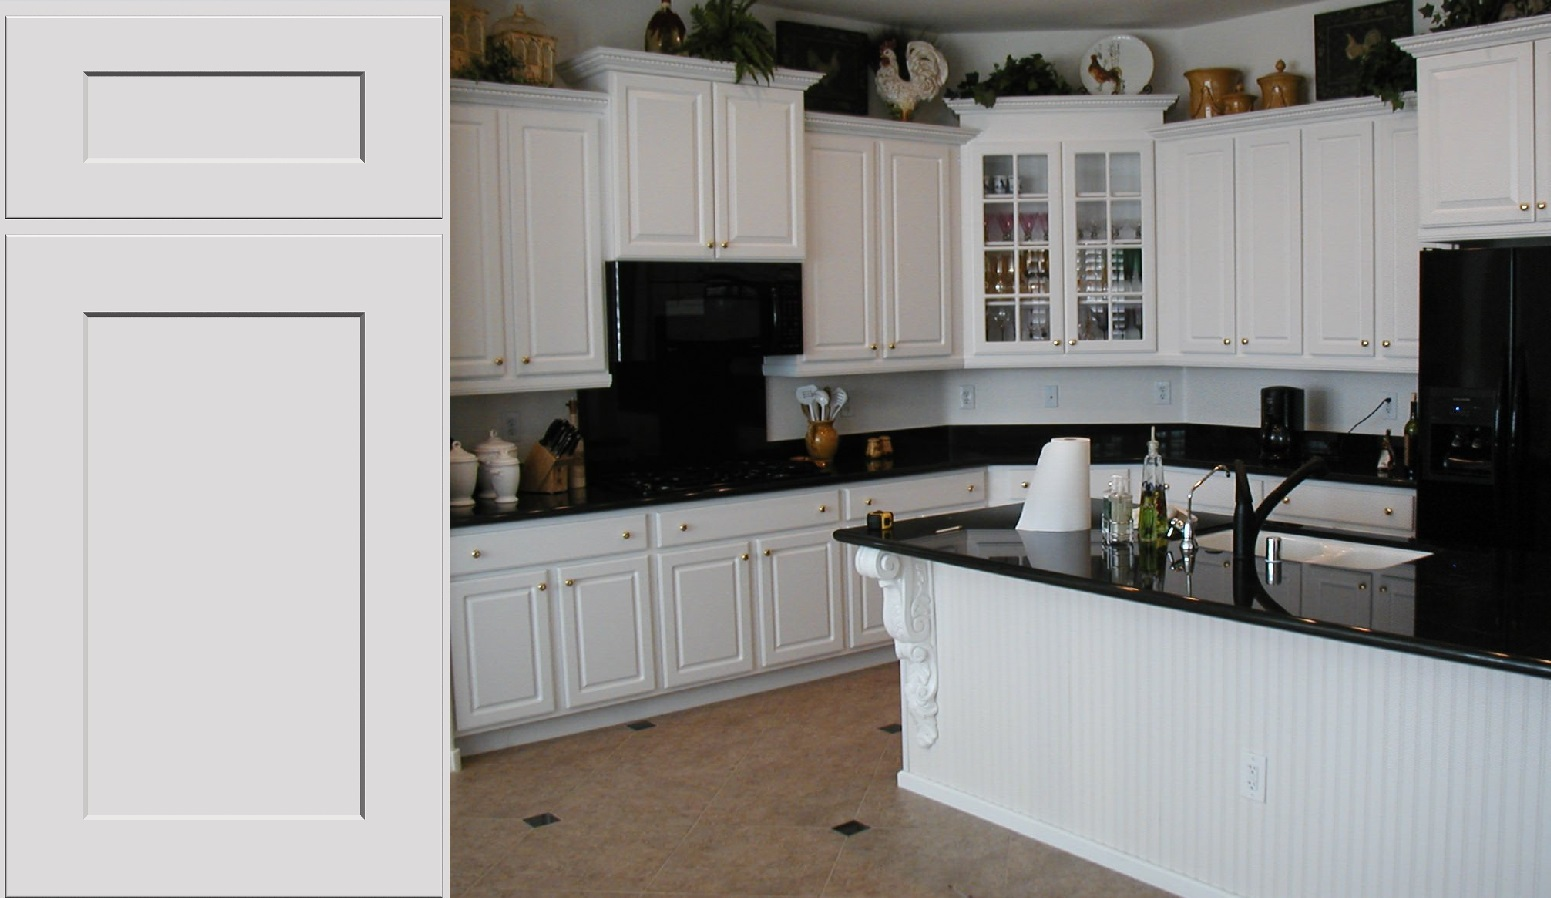 San Antonio Framed Birch Cabinets Kitchen Remodeling Contractors Stone Oak Affordable Bathroom Remodeling Service Alamo Heights Framed Birch Cabinets Shavano Park ProCraft Cabinet Installation Boerne Kitchen Cabinet Store Helotes Bathroom Cabinet Store Balcones Heights Shaker Farmhouse Renovation Liberty Shaker White Framed Birch Cabinets